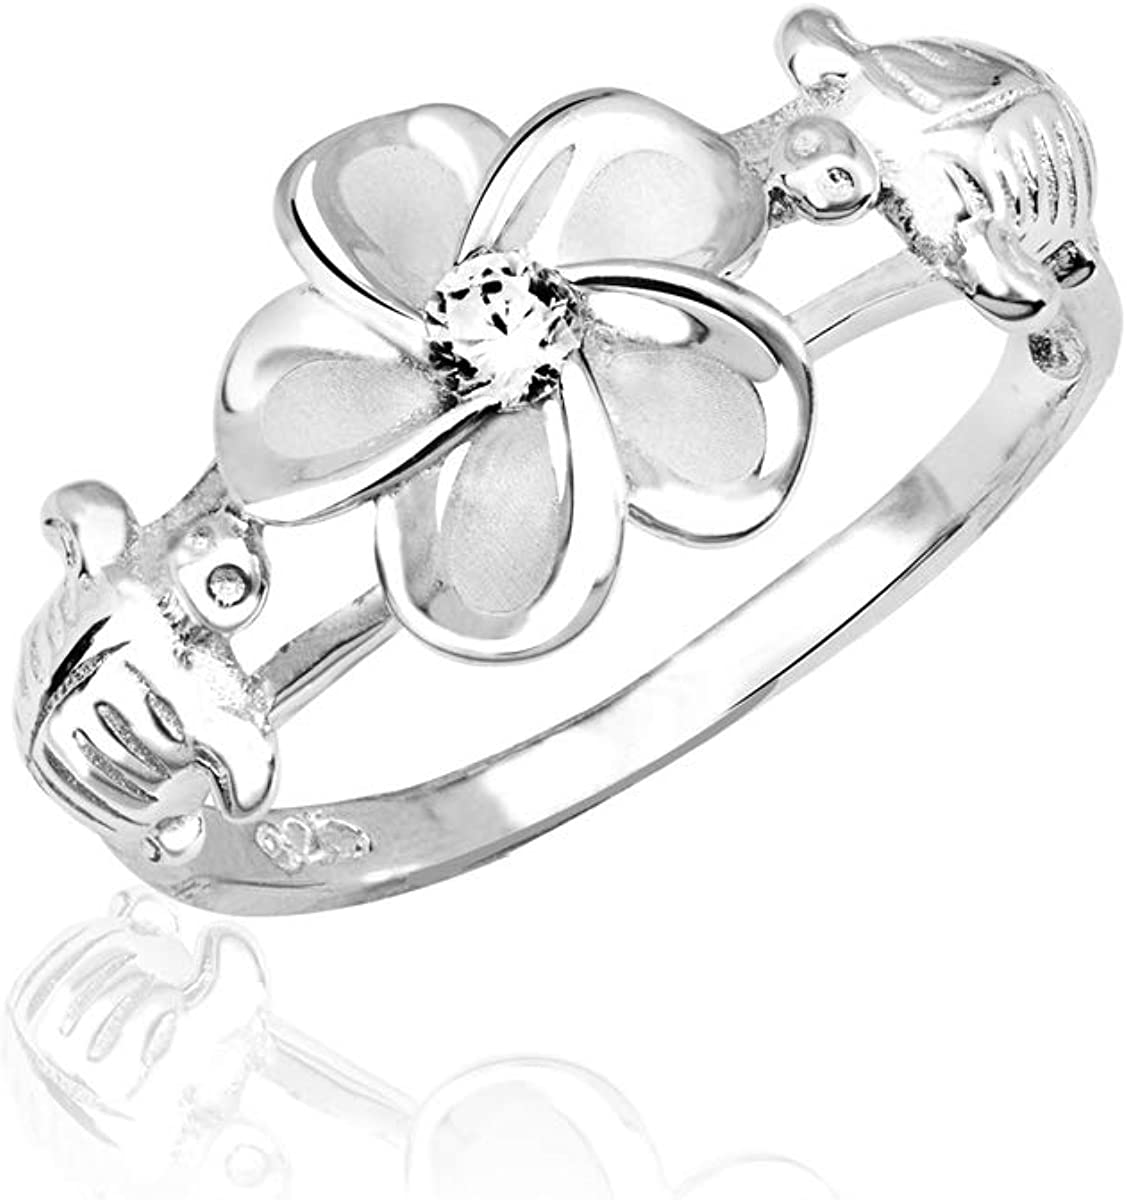 Honolulu Jewelry Company Sterling 40% Under blast sales OFF Cheap Sale Silver Rin Plumeria and Turtle